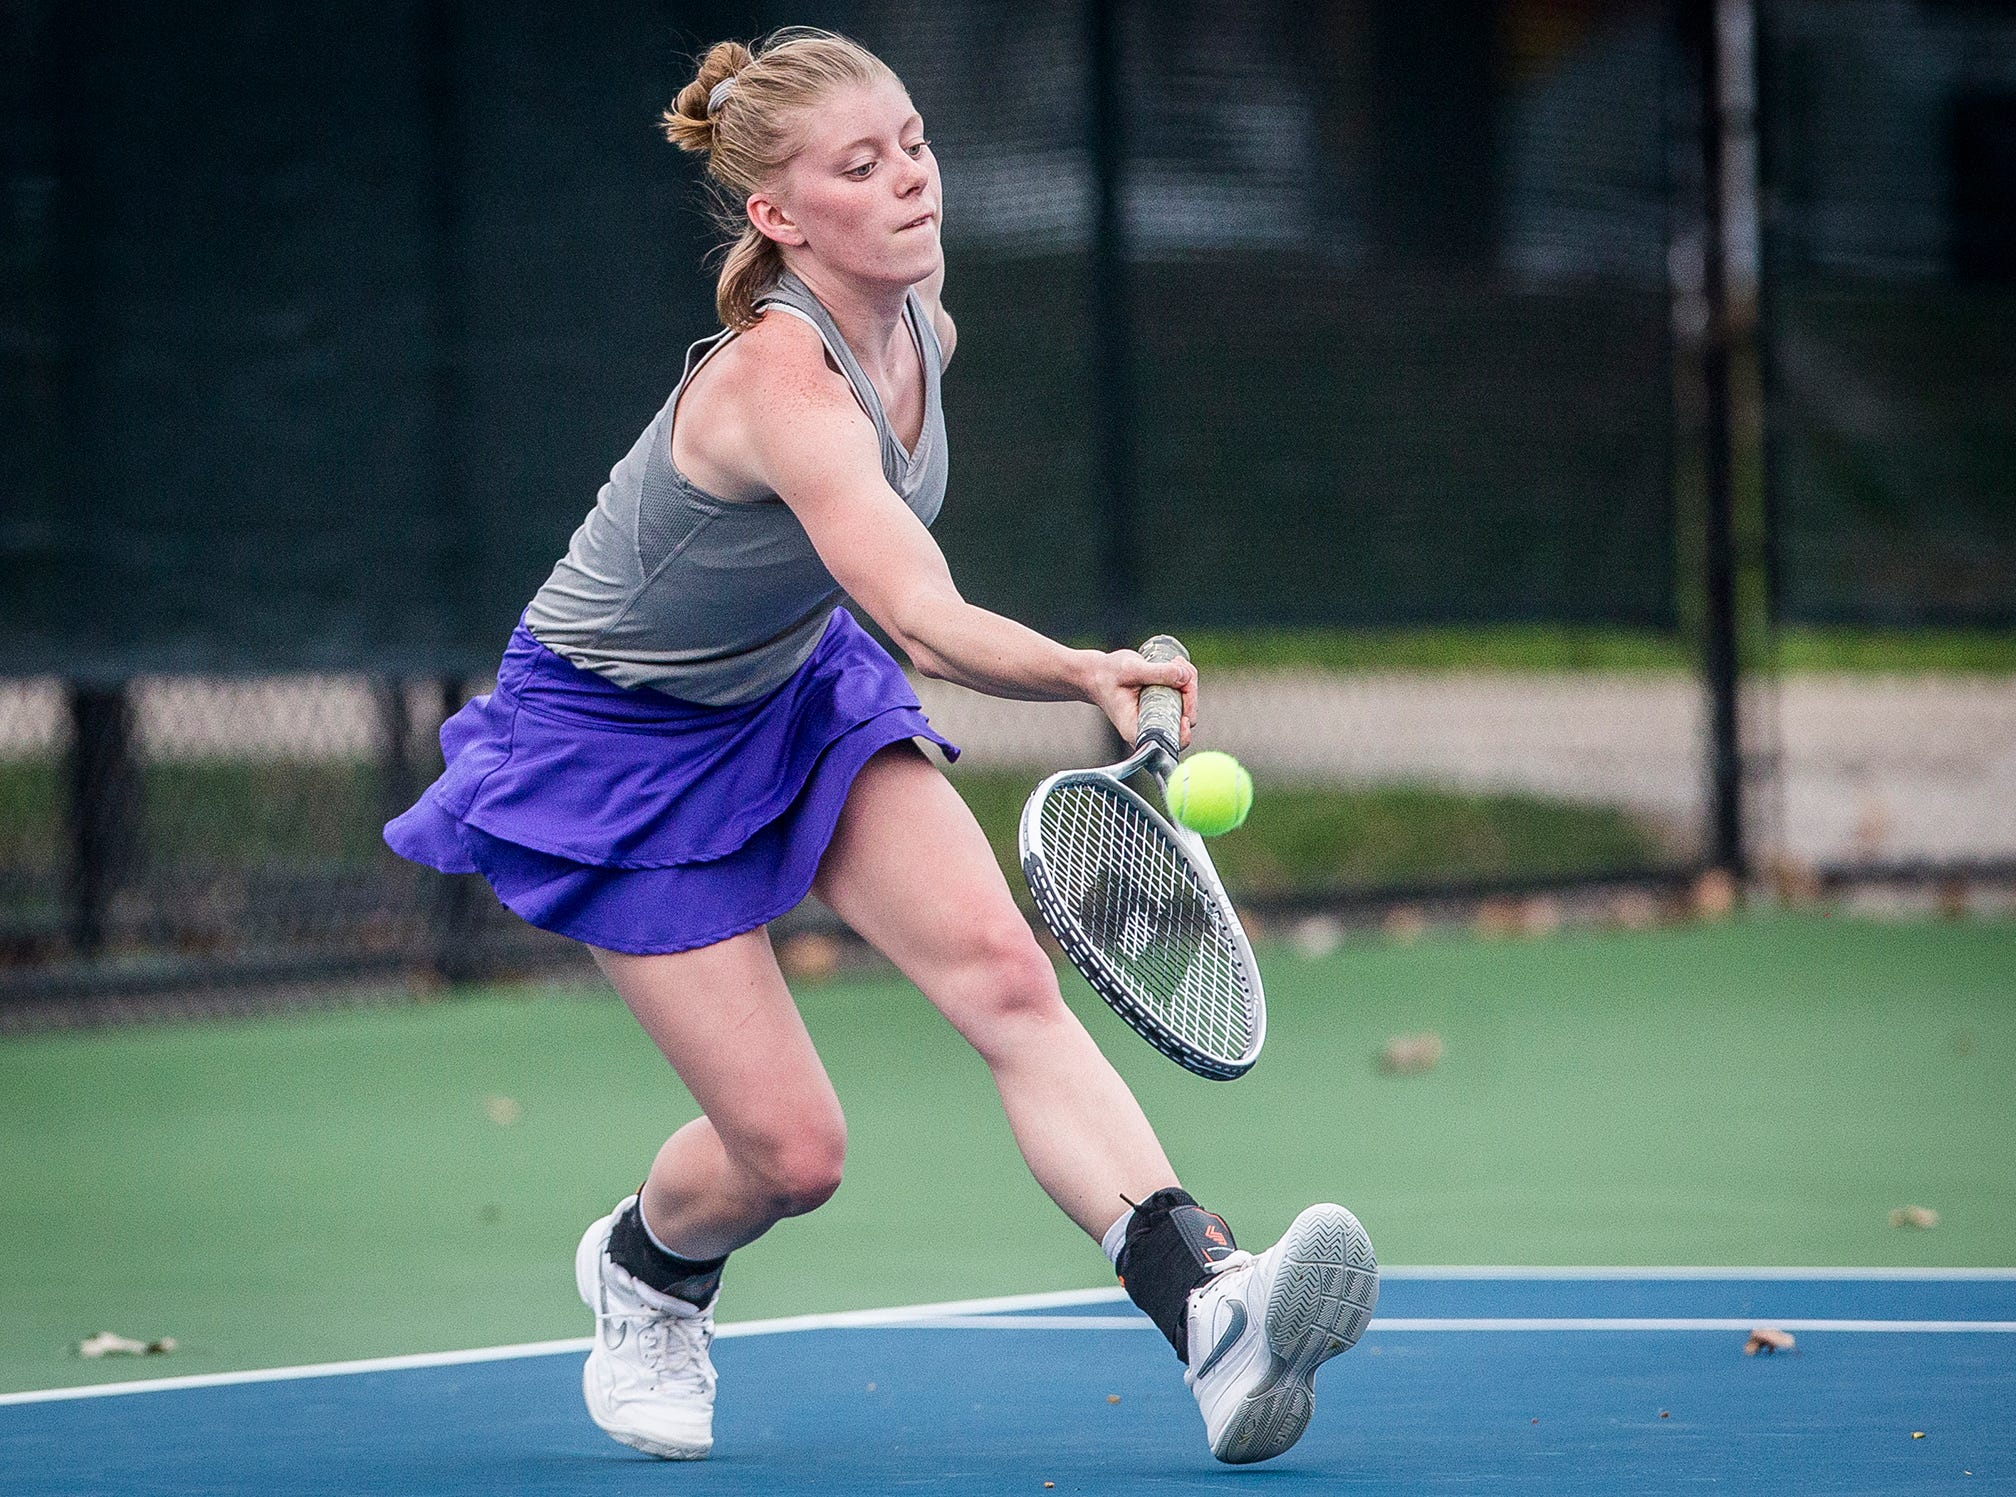 Central's Catherine Dragiciu competes against Burris during her singles match at Ball State Thursday, April 11, 2019.